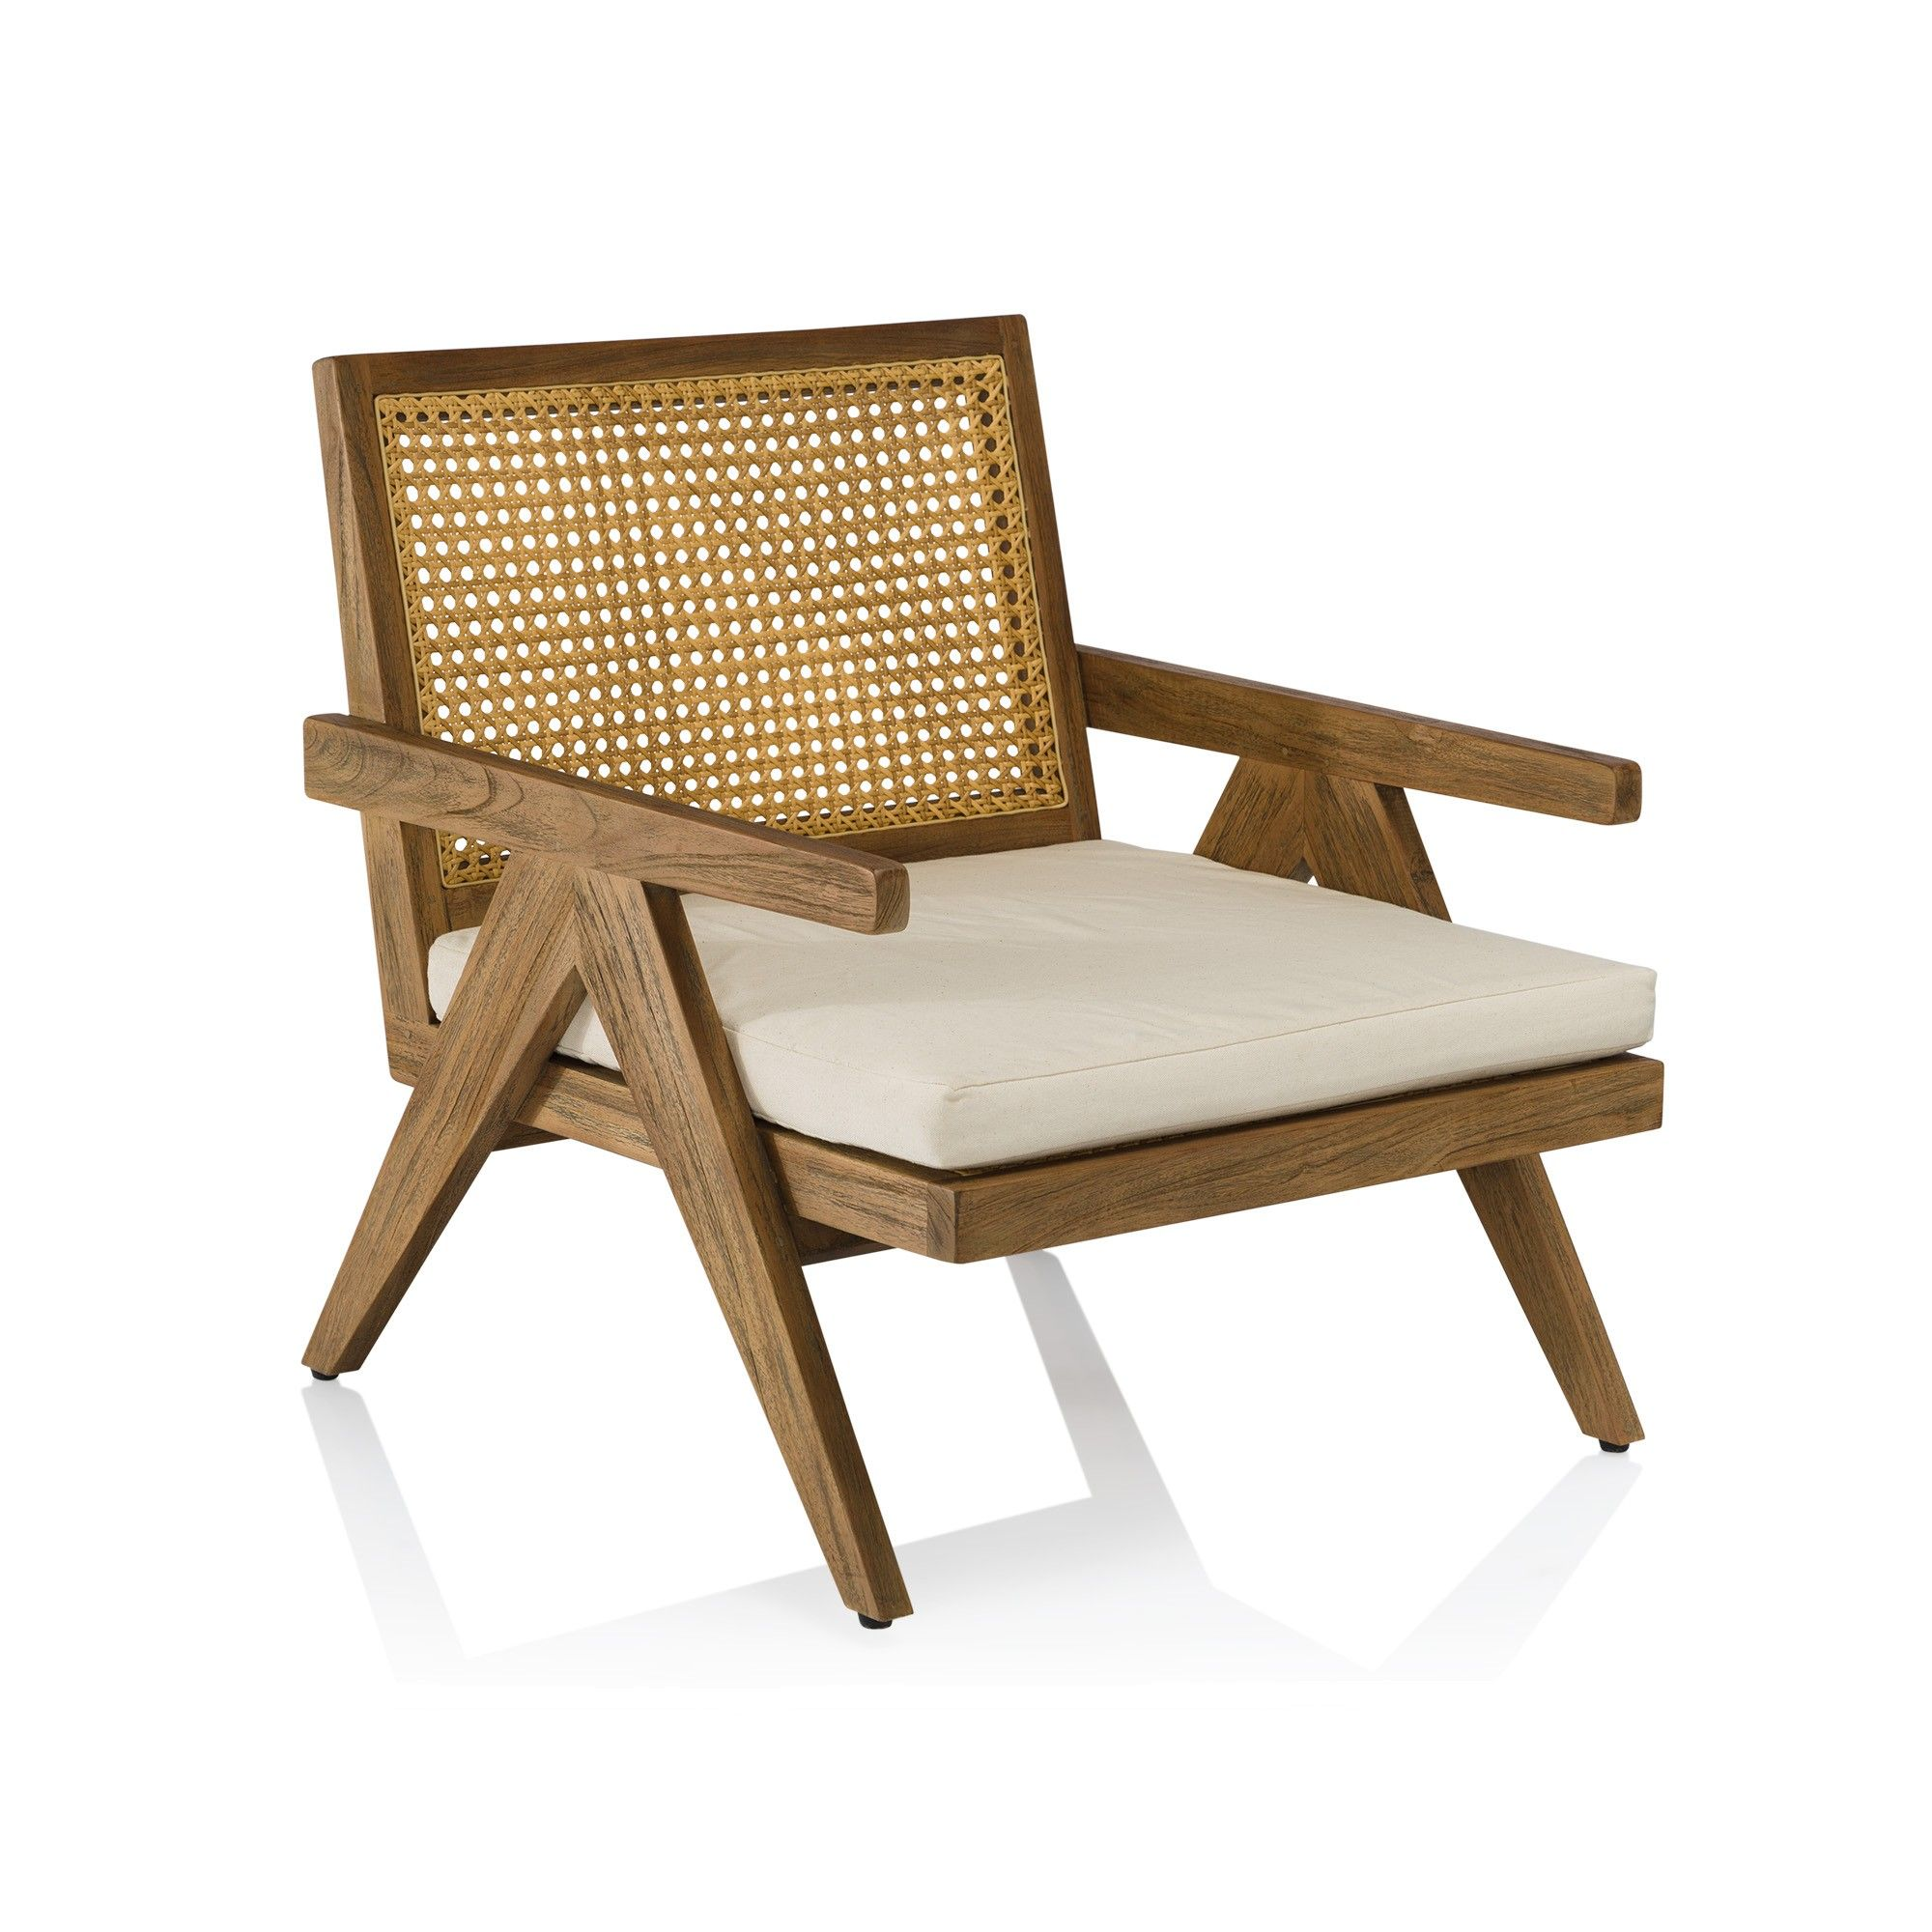 A contemporary teak and wicker outdoor occasional chair